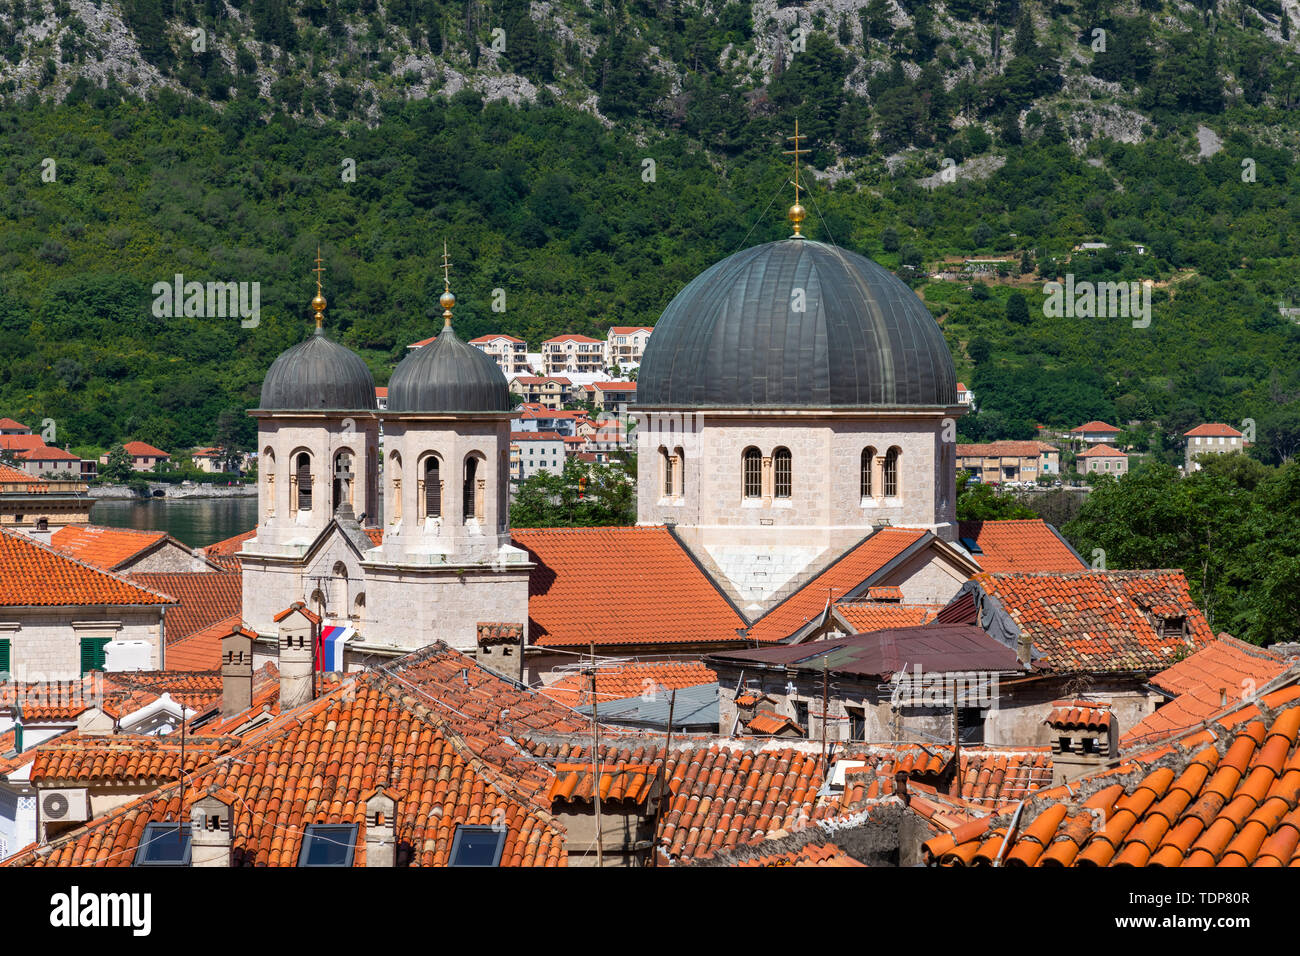 Serbian Orthodox Church of St. Nikola and Red tiled roofs of the old town houses in Kotor, Montenegro - Stock Image